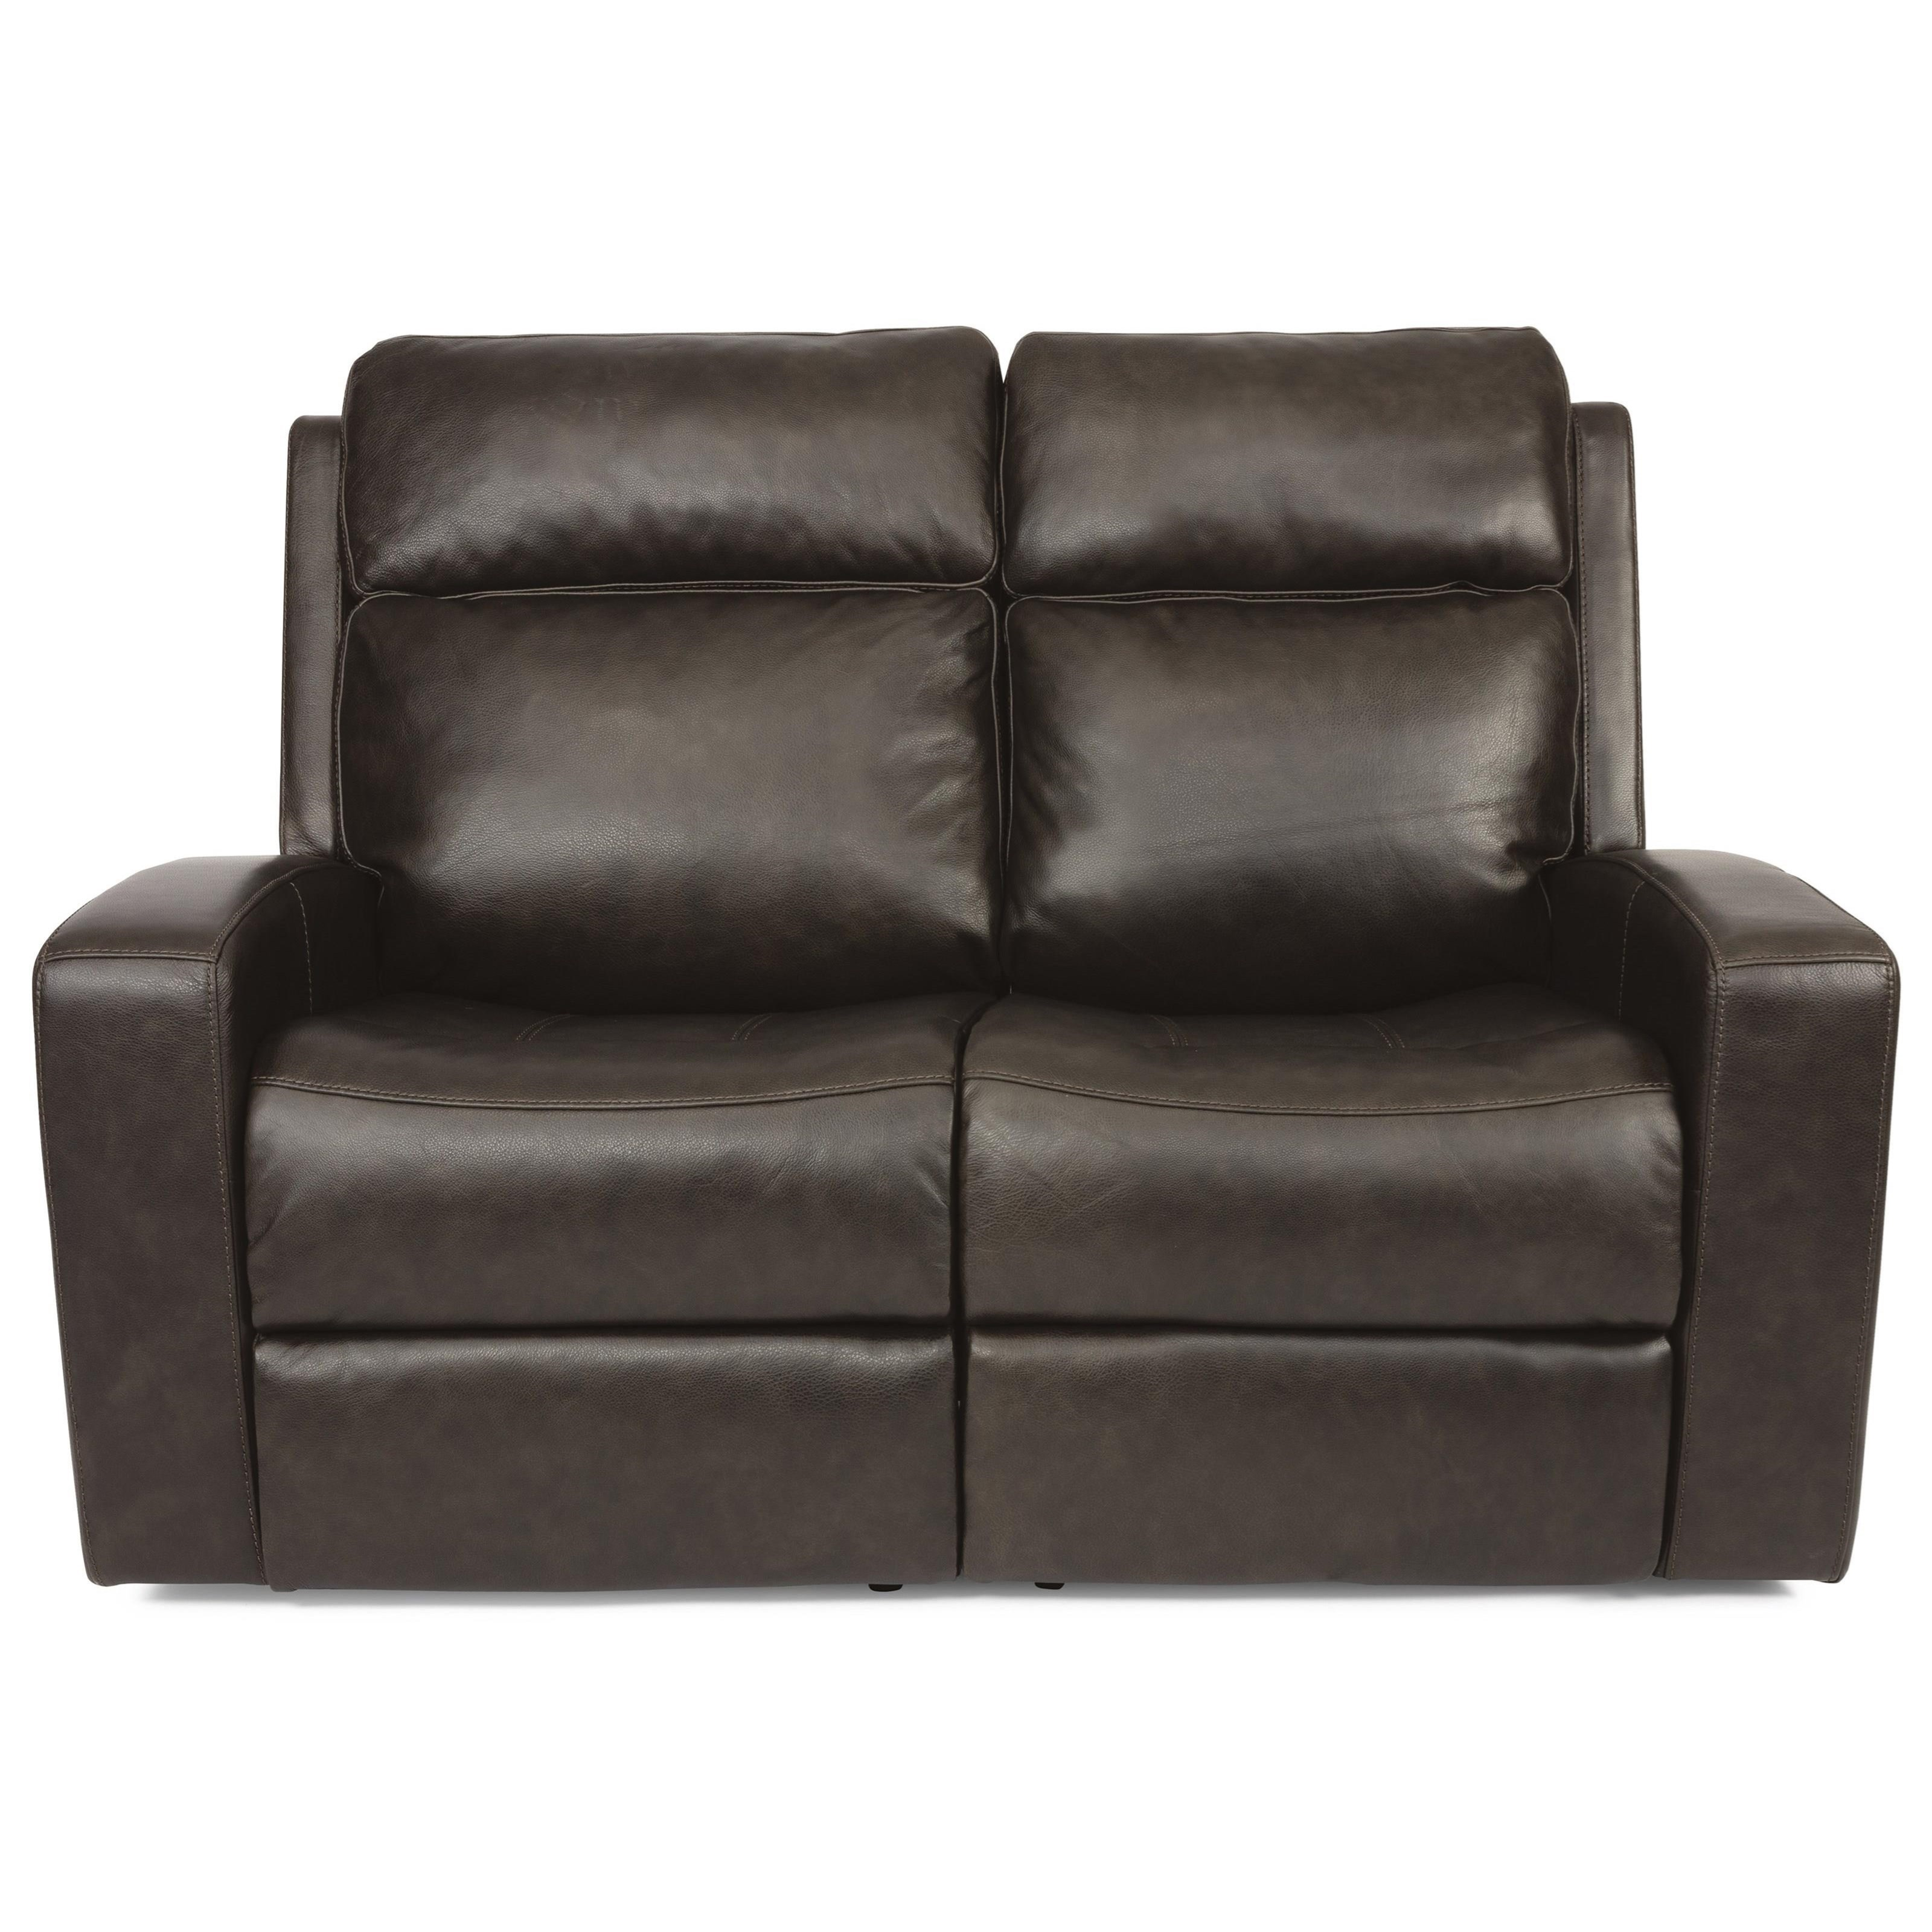 Latitudes - Cody Power Reclining Loveseat by Flexsteel at Furniture and ApplianceMart